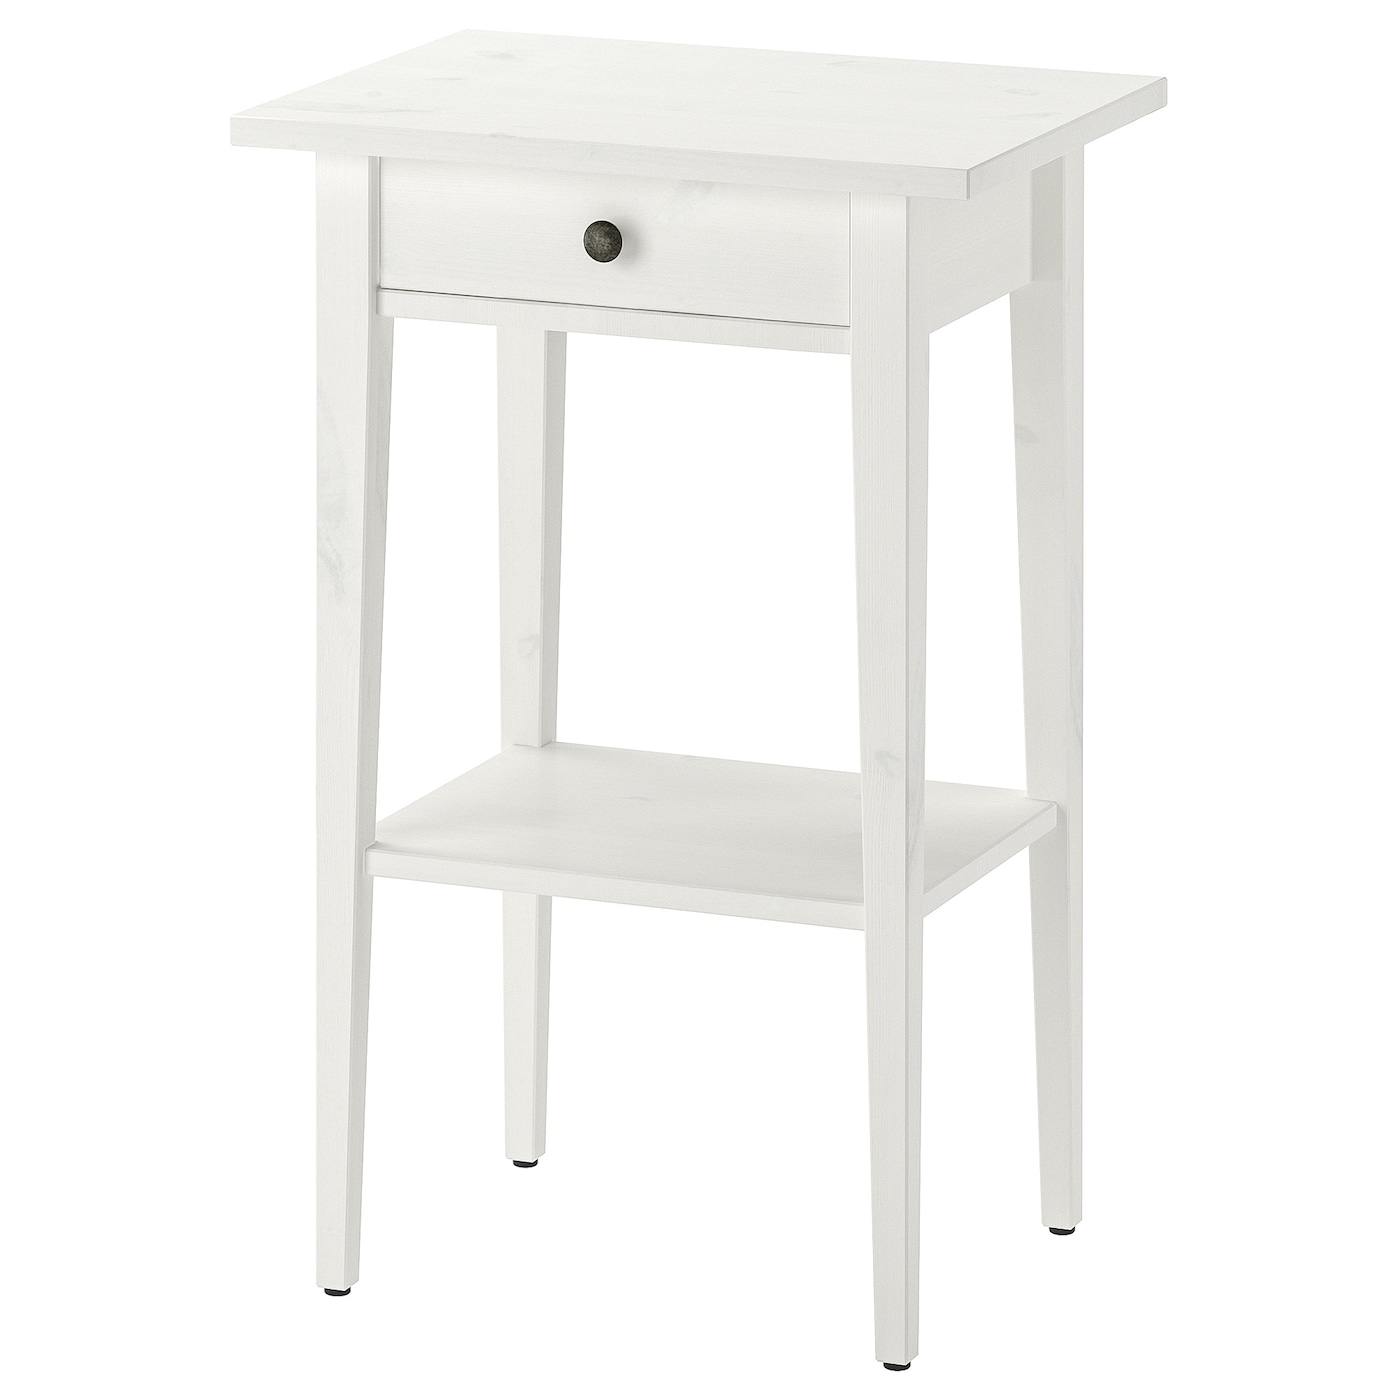 s-bedside-table-white-stain__0624424_PE691831_S5